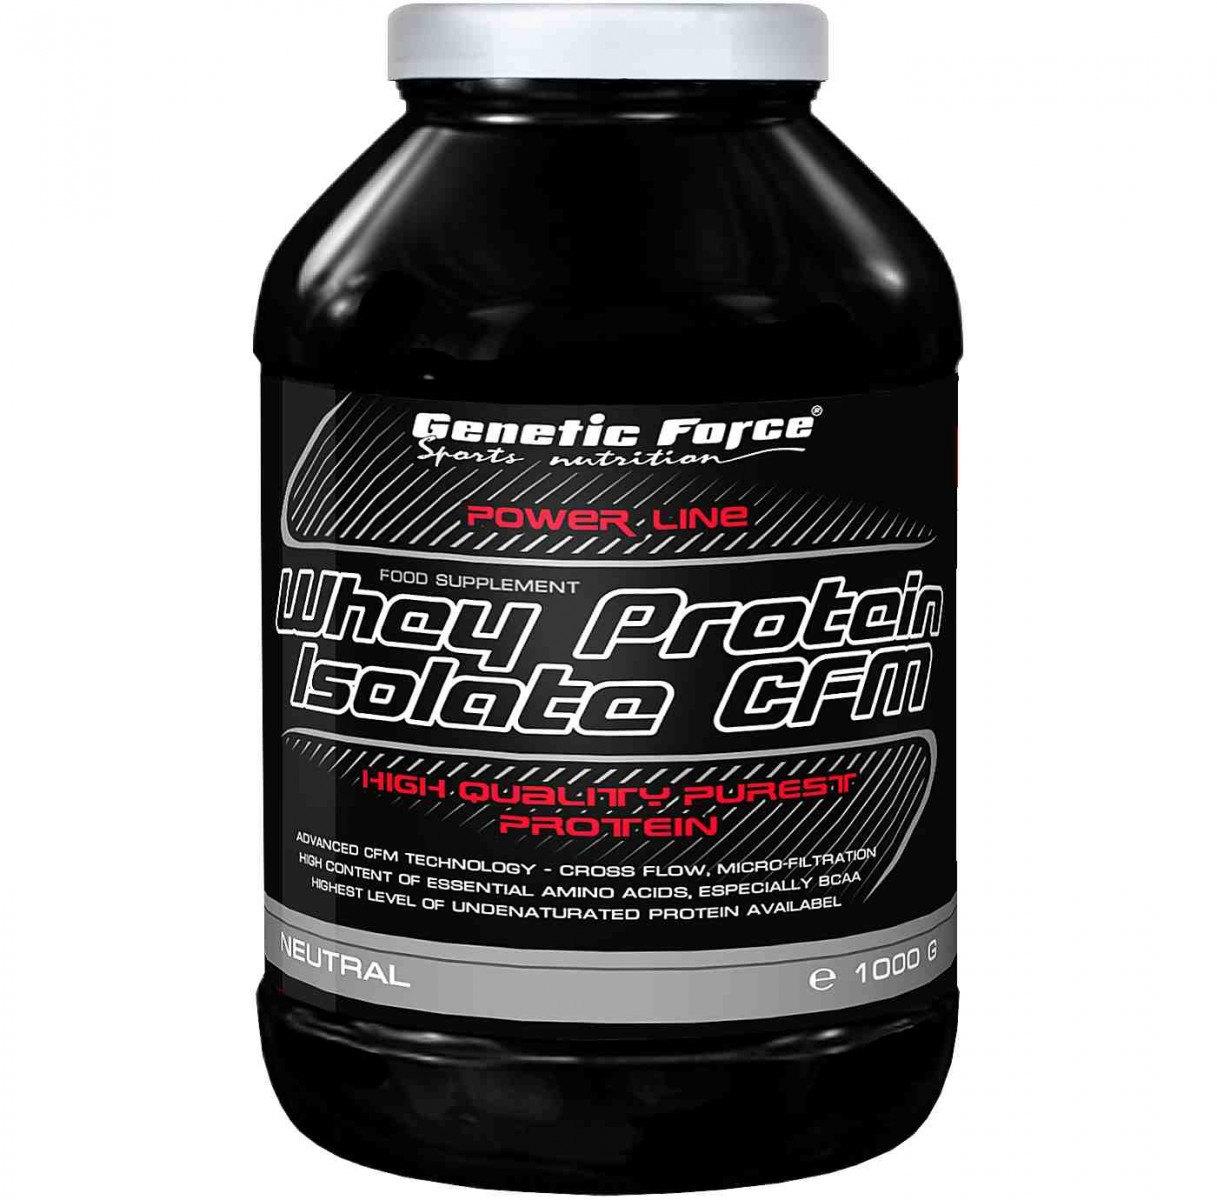 Genetic Force • Whey Protein Isolate CFM • 1000 гр.